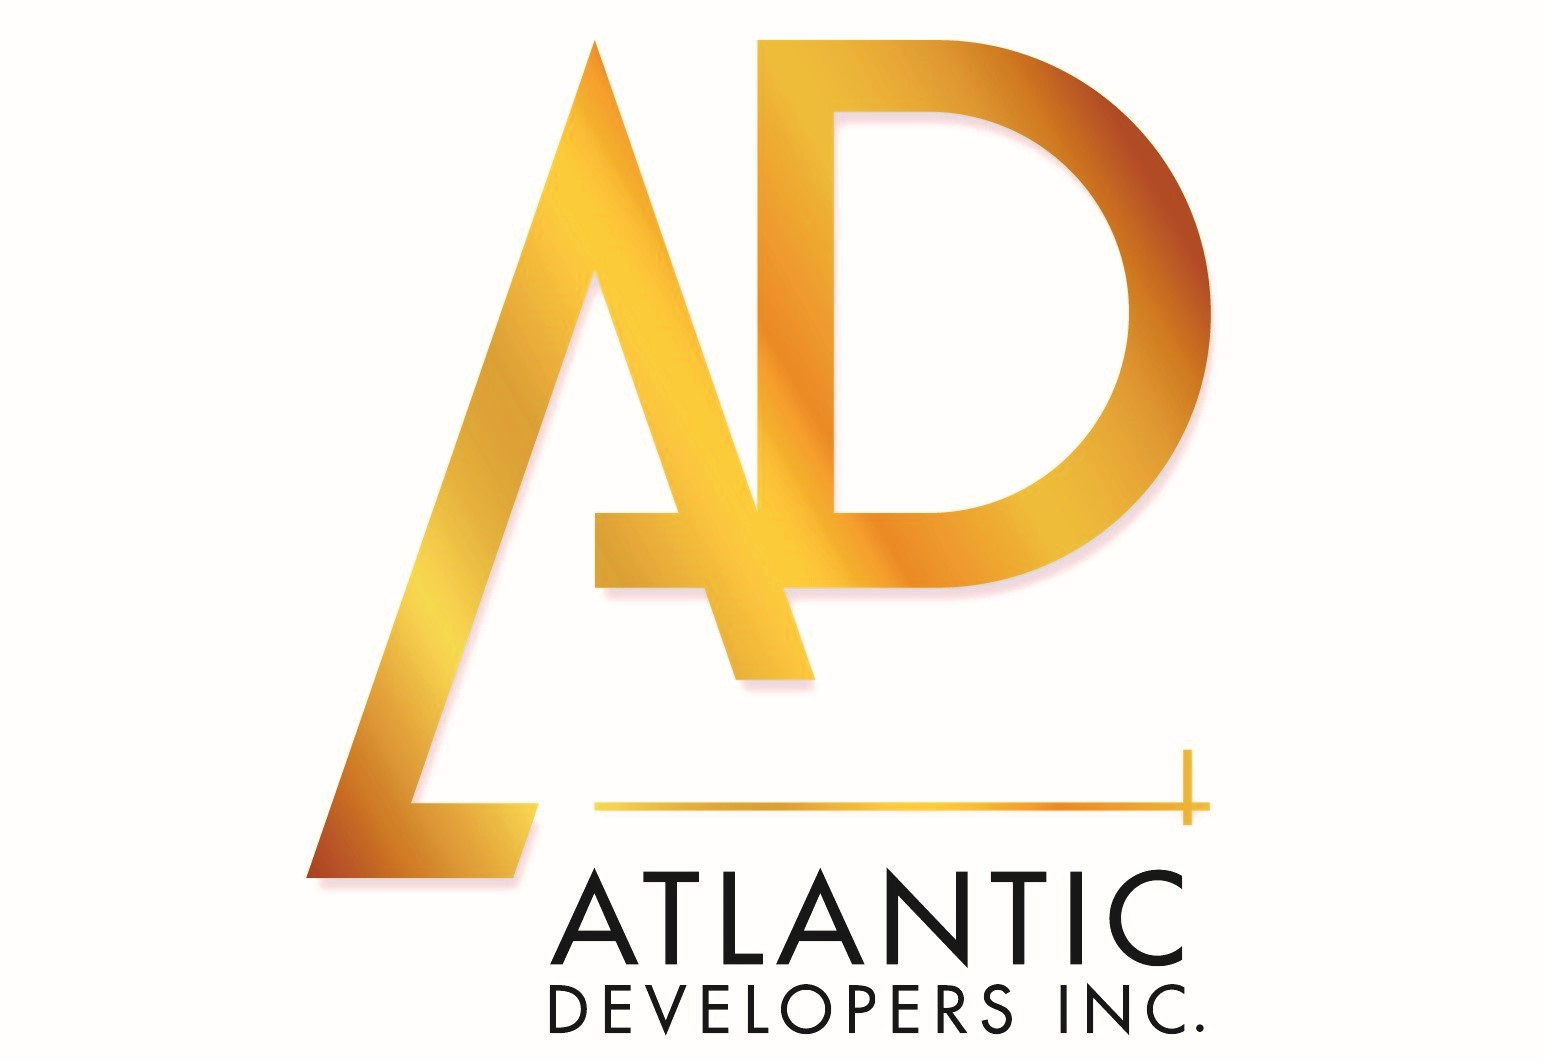 Atlantic Developers